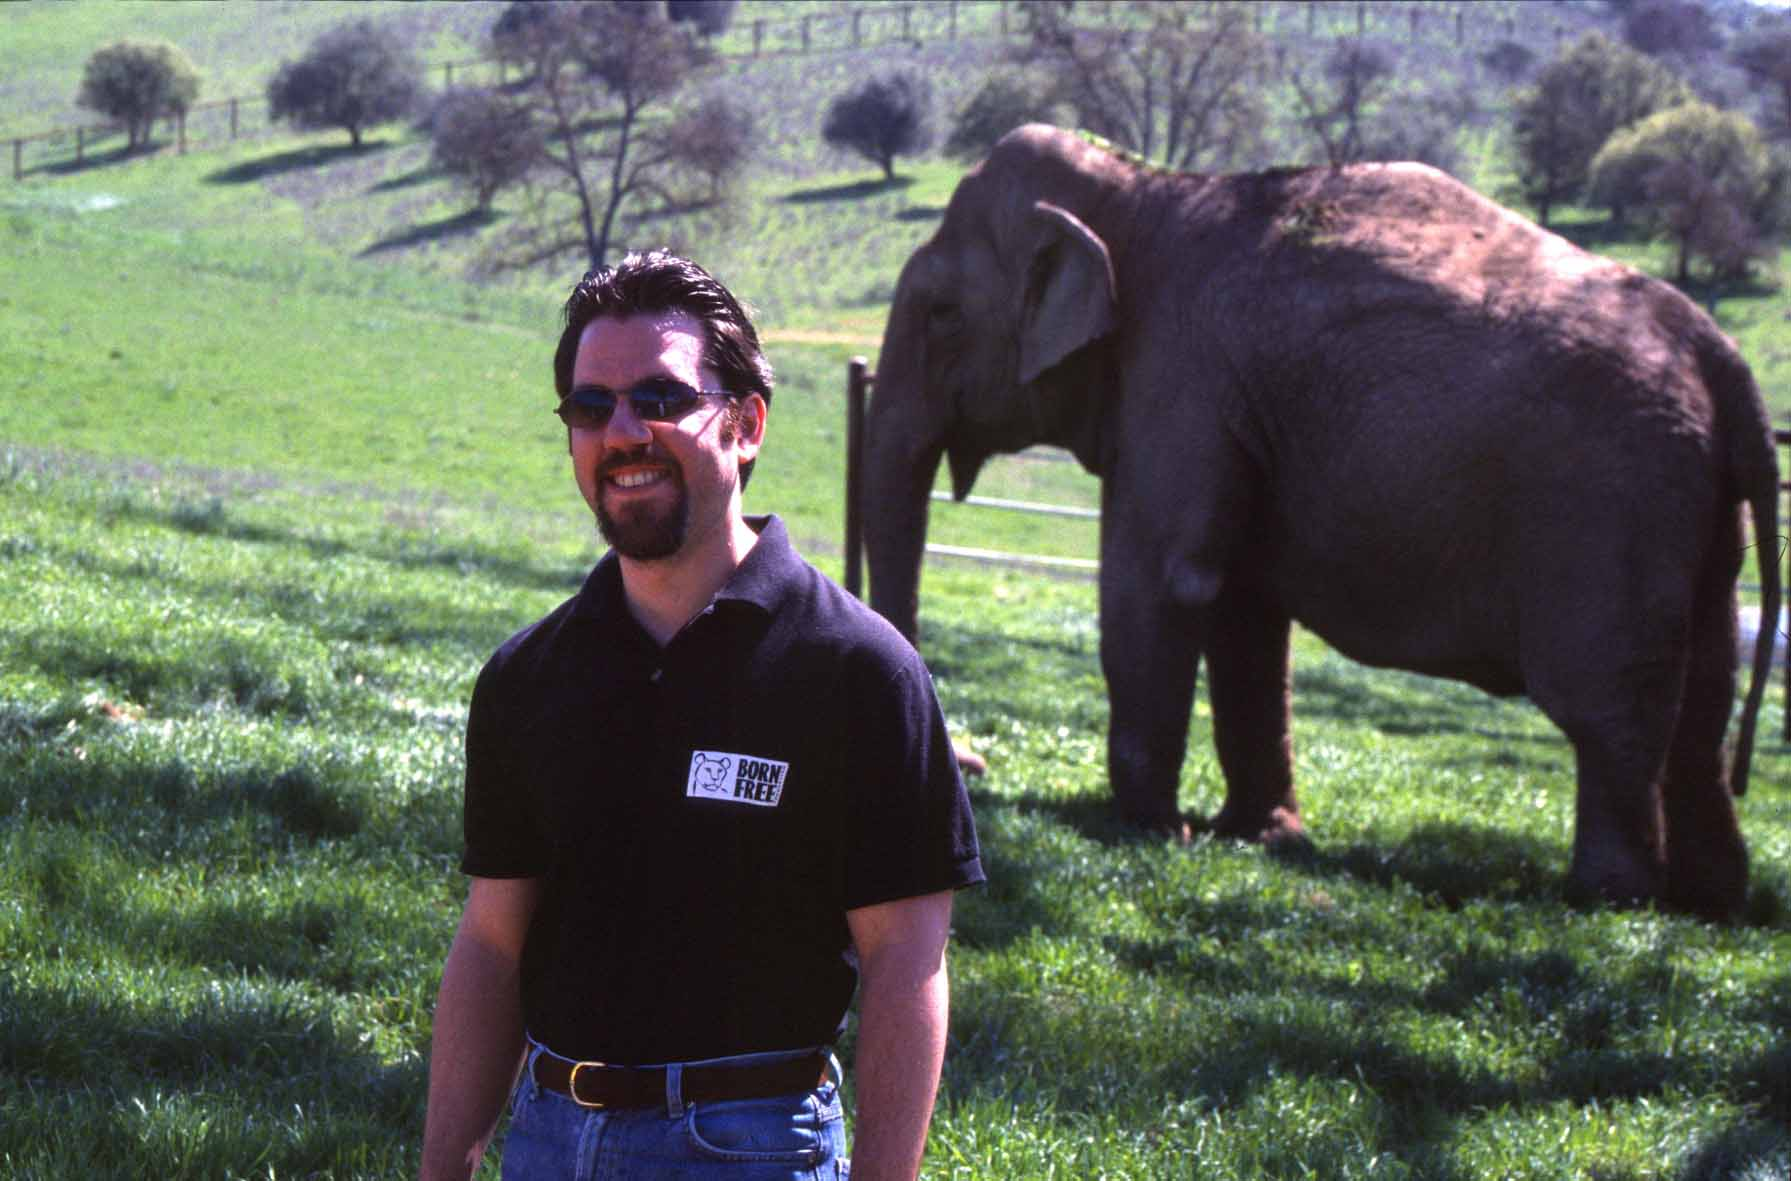 Adam Roberts CEO of BORN FREE USA at PAWS elephant sanctuary in California